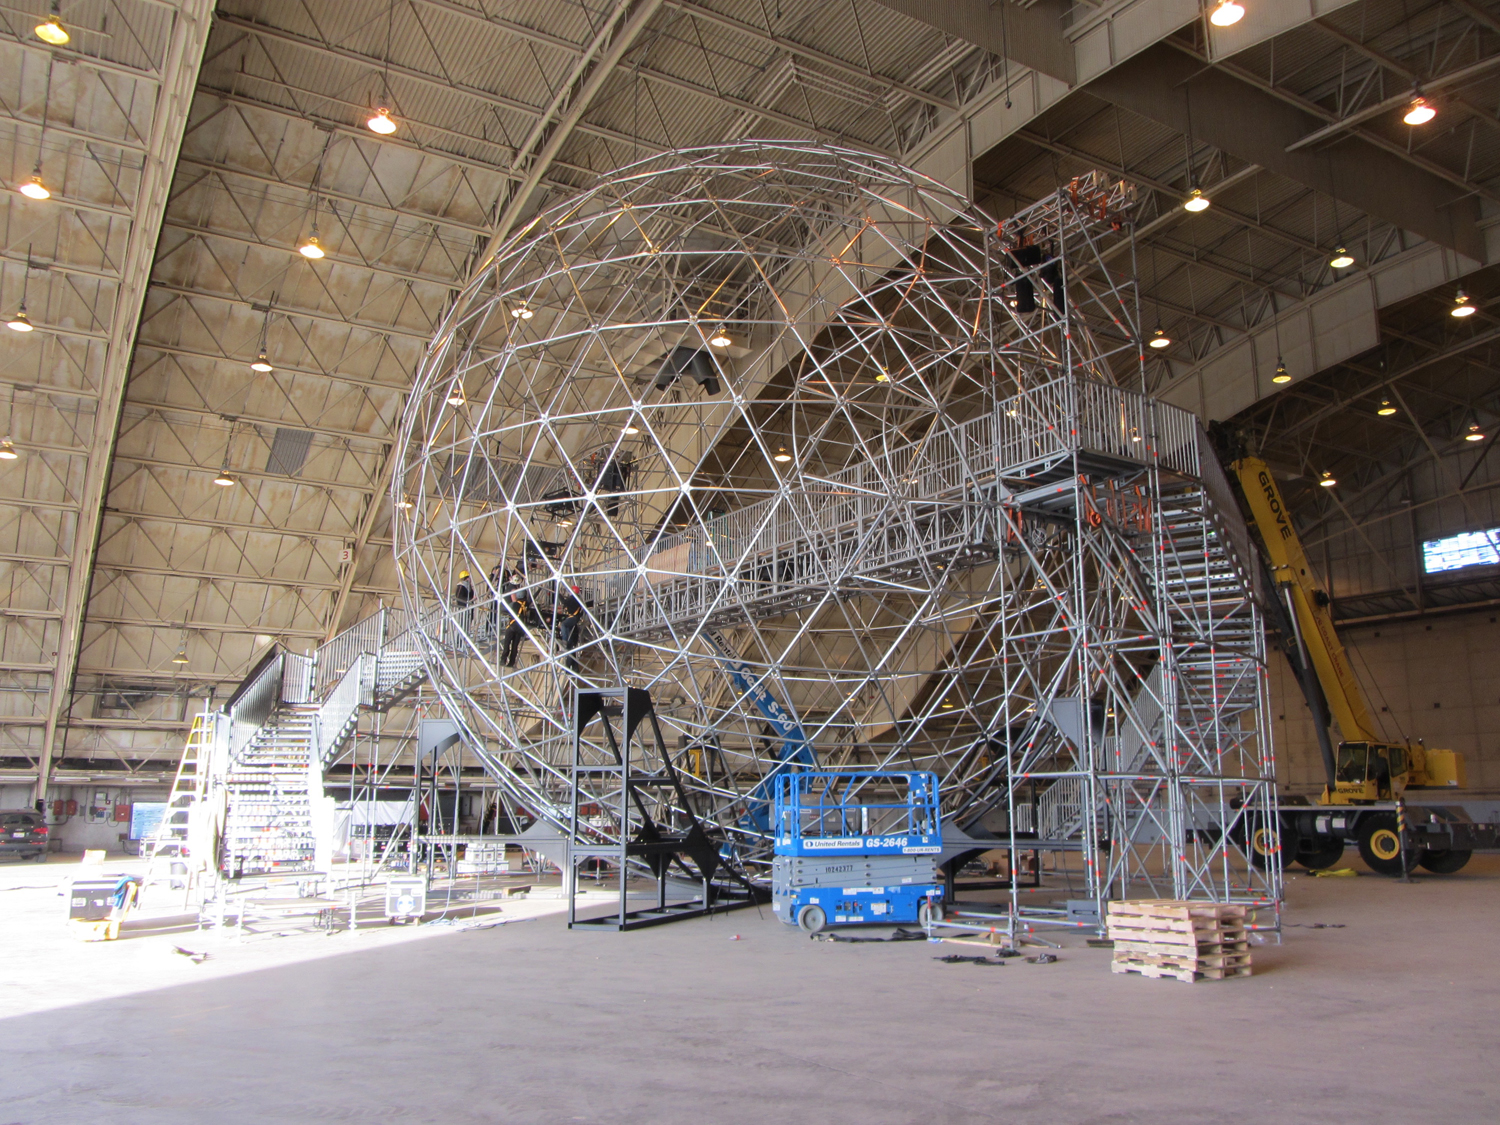 Test build in CA - Completed geodesic & bridge with stair structures